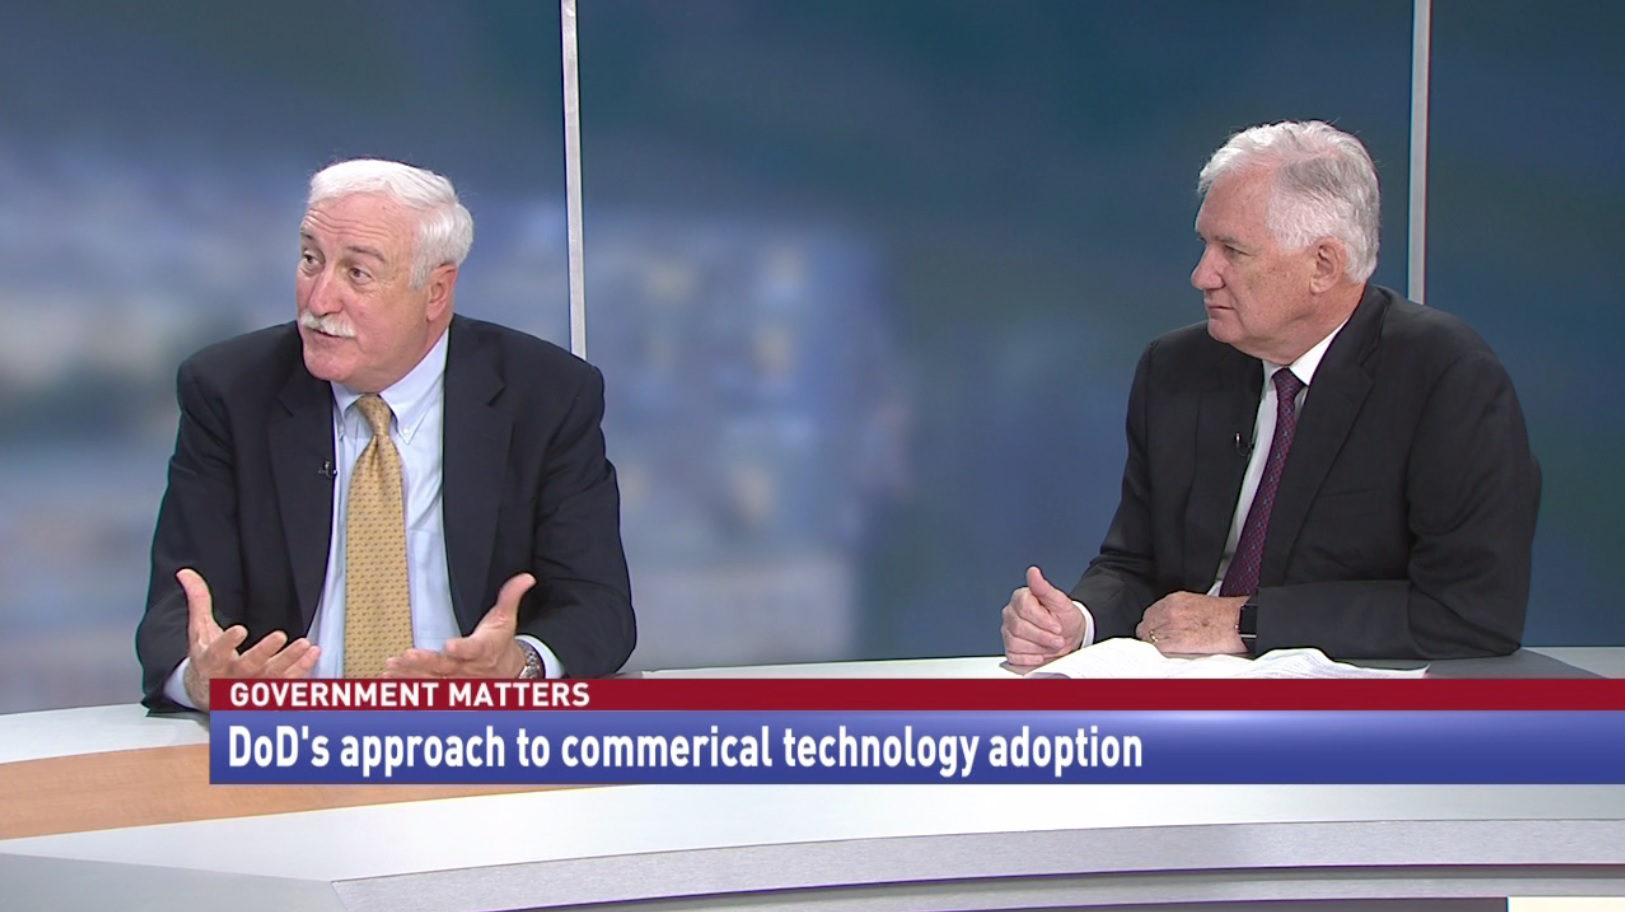 DoD's approach to commercial technology adoption